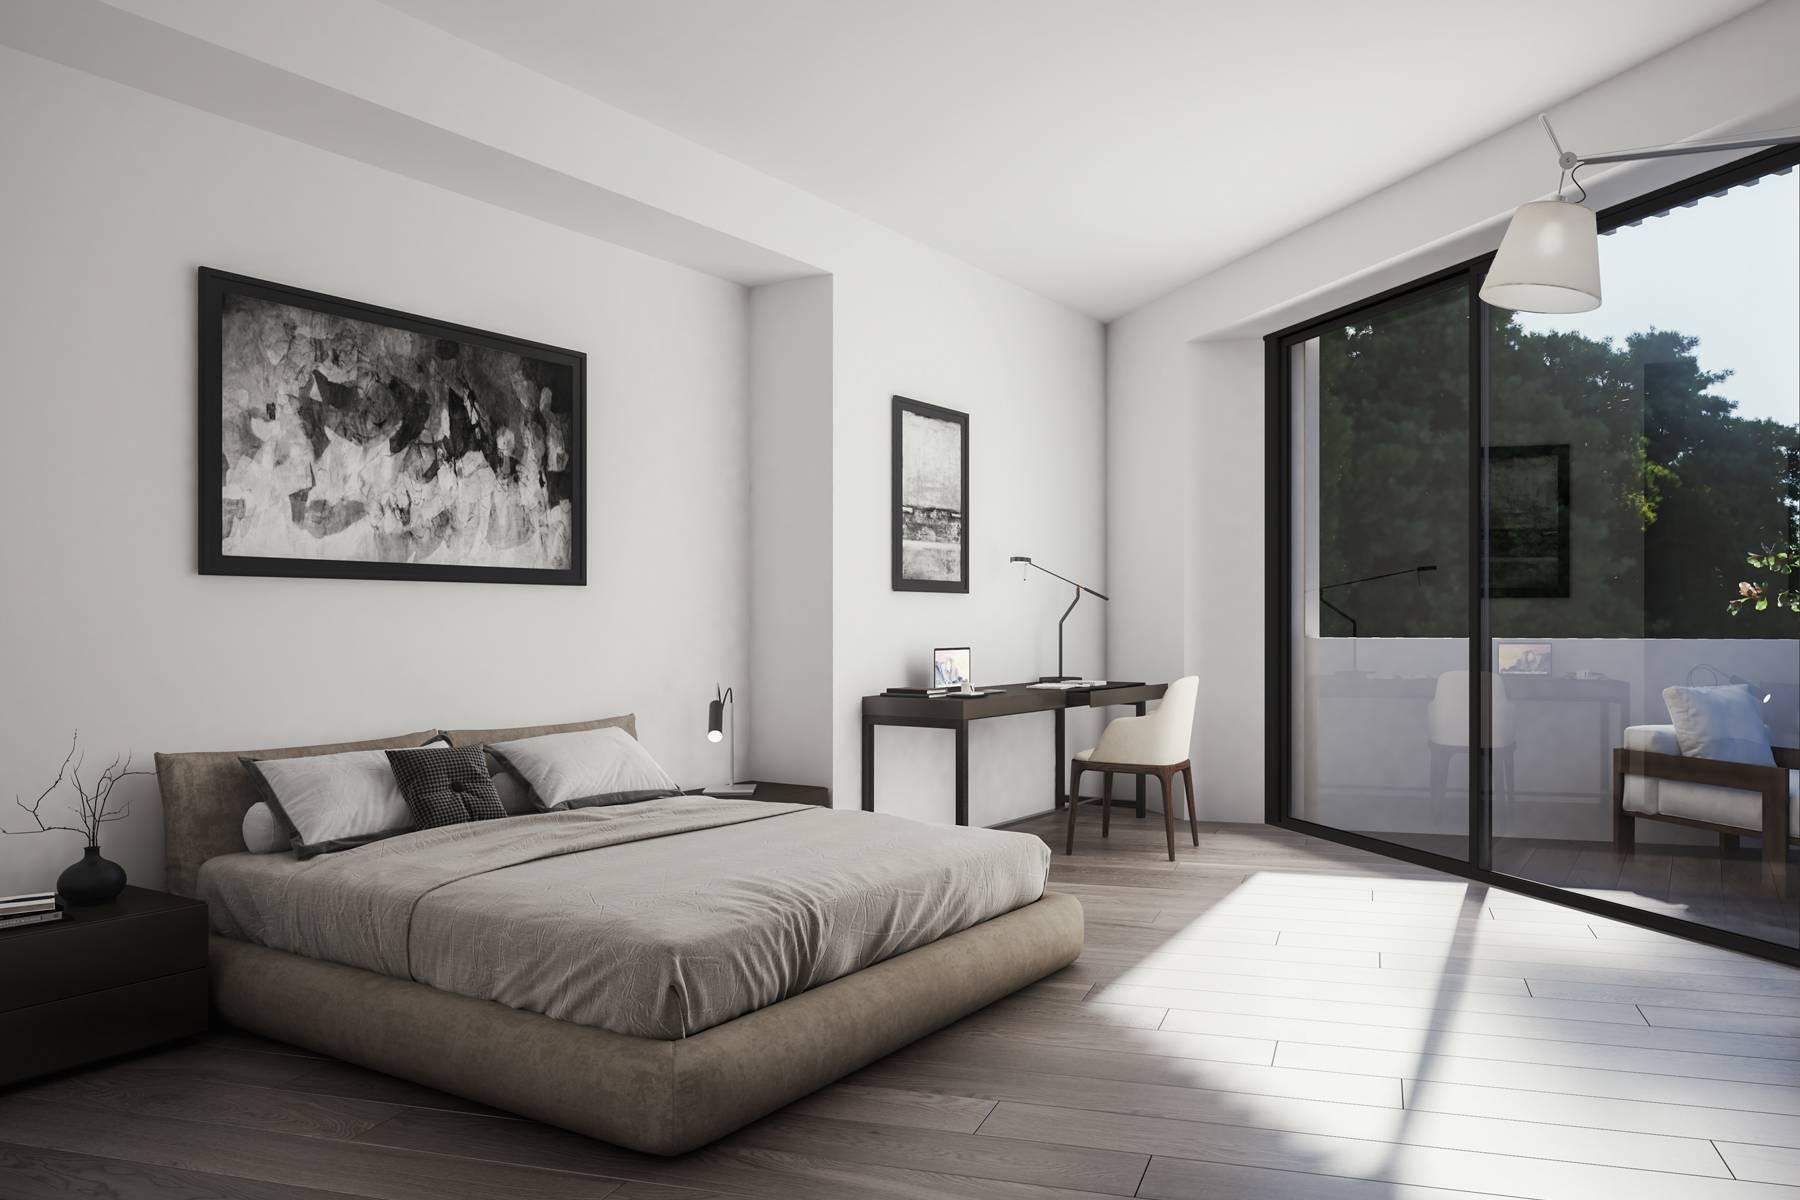 Camilluccia 535: the quiet of the countryside in the heart of Rome - Second floor - 5